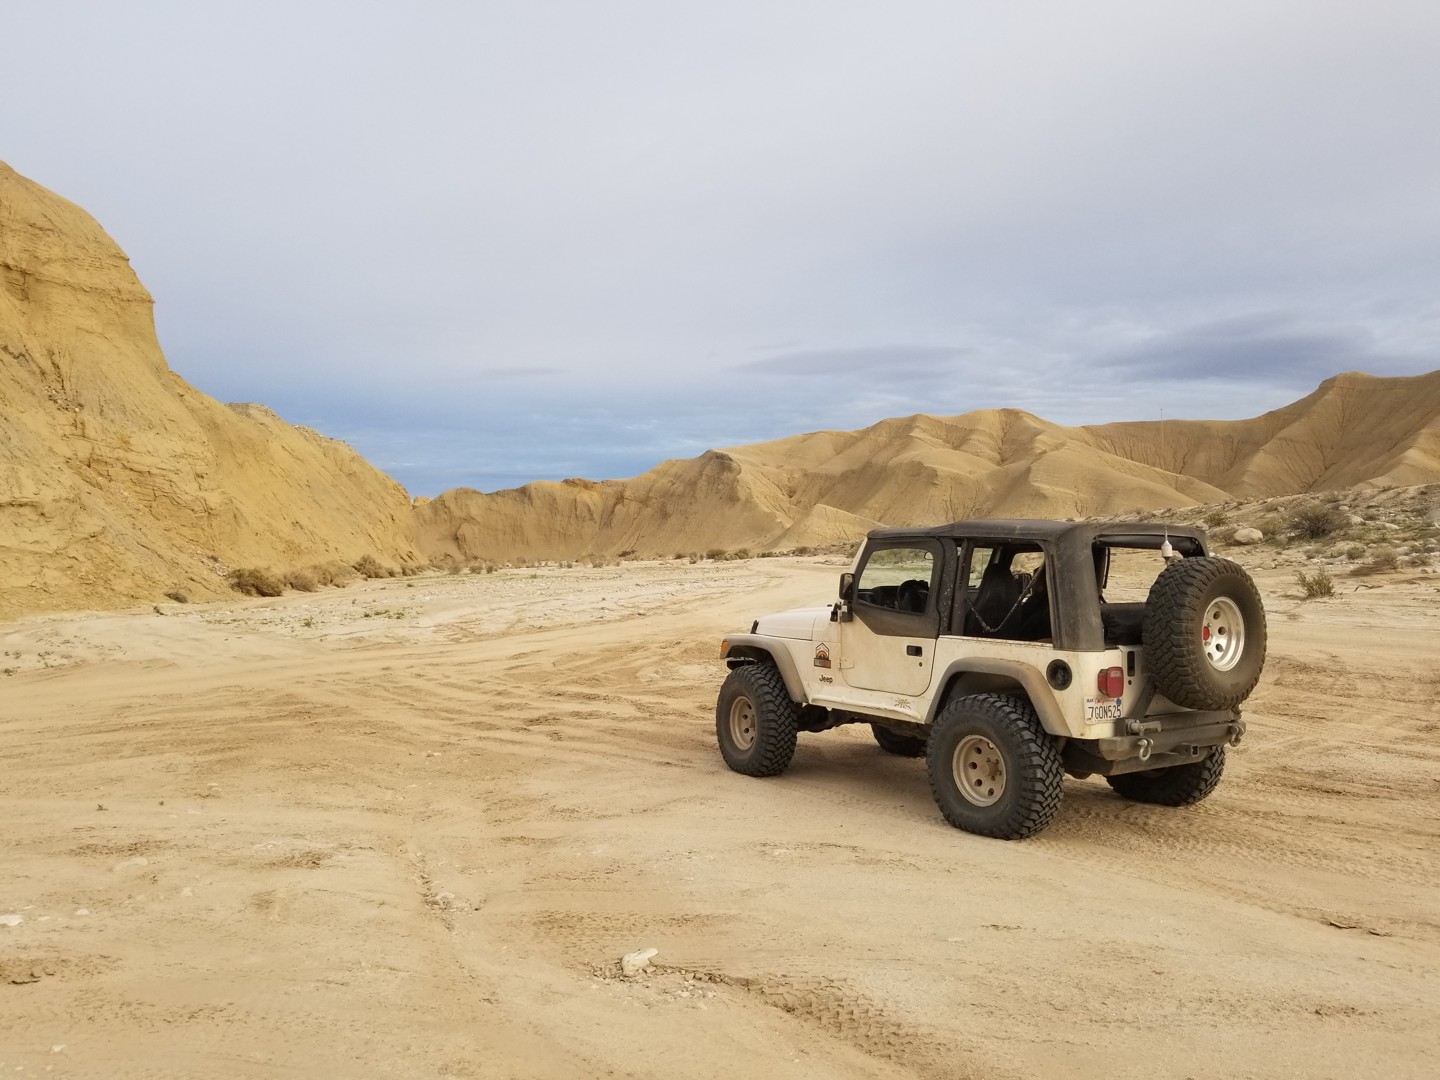 Trail Review: Fish Creek Trail - Anza Borrego